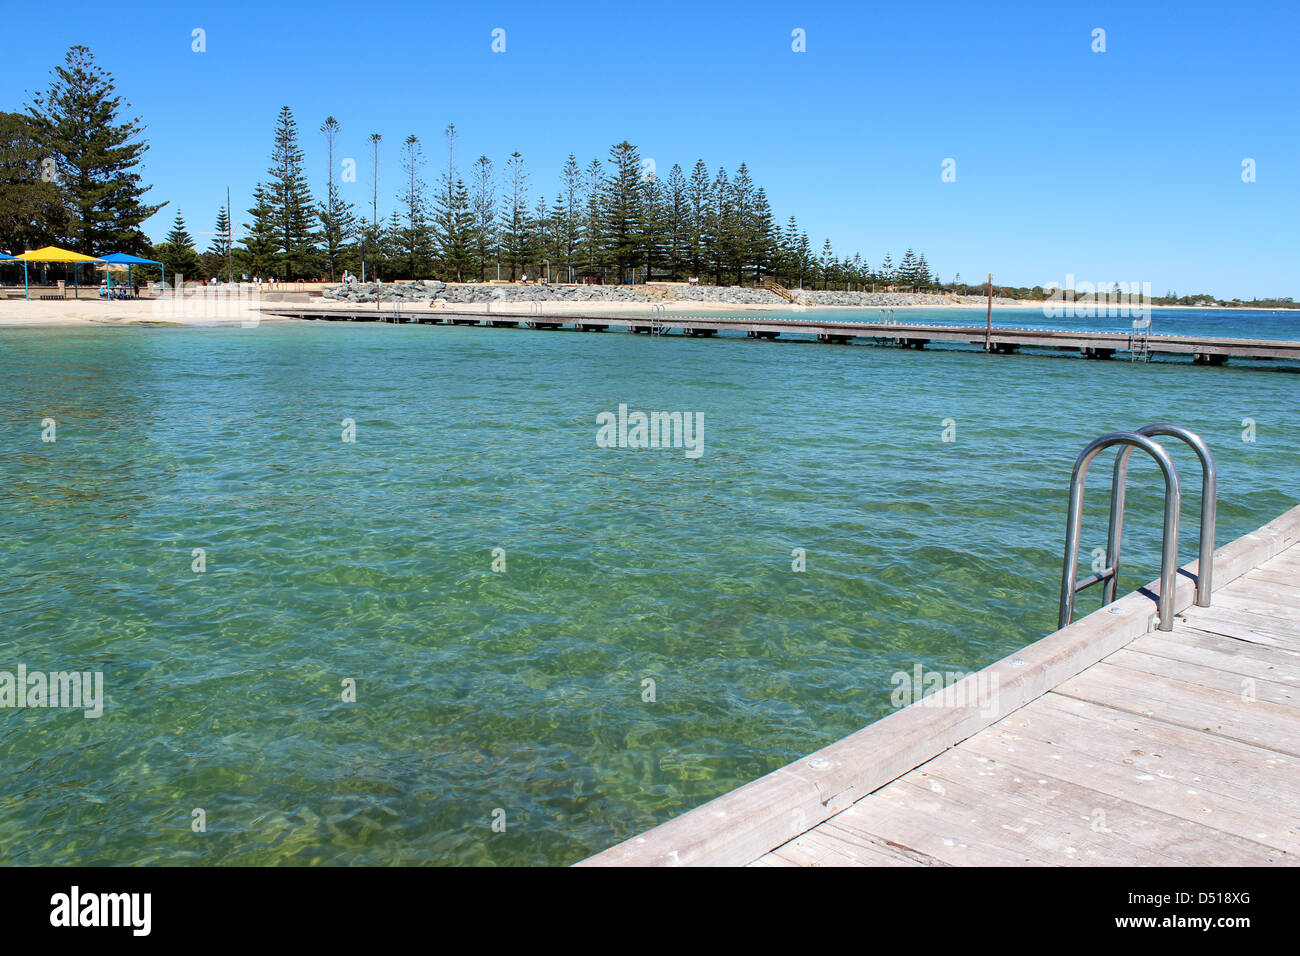 Shark Proof Swimming Pool In The Calm Indian Ocean At Busselton Stock Photo Royalty Free Image